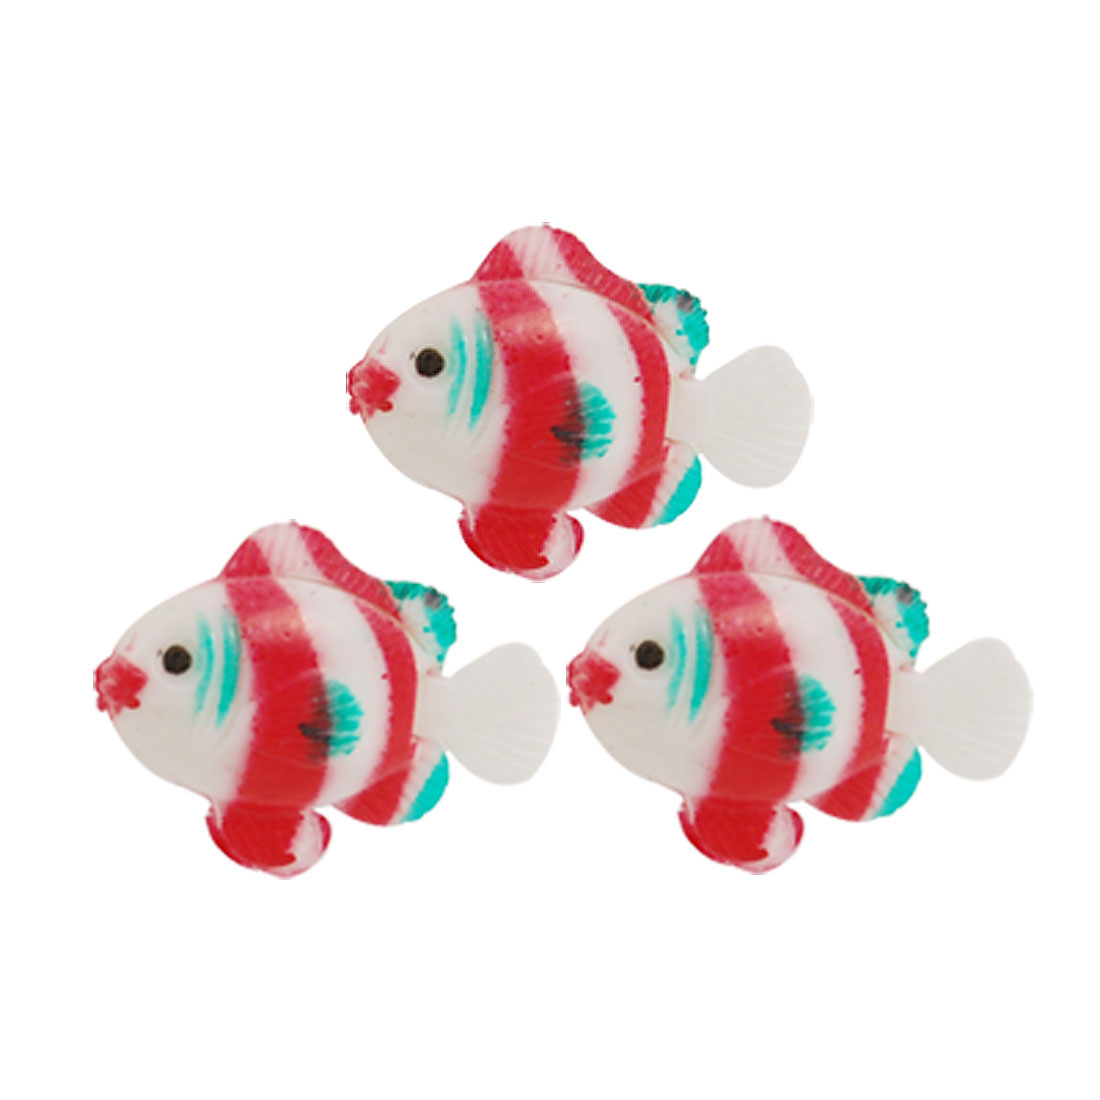 3 Pcs Red White Plastic Floating Tropical Fish Aquarium Ornament